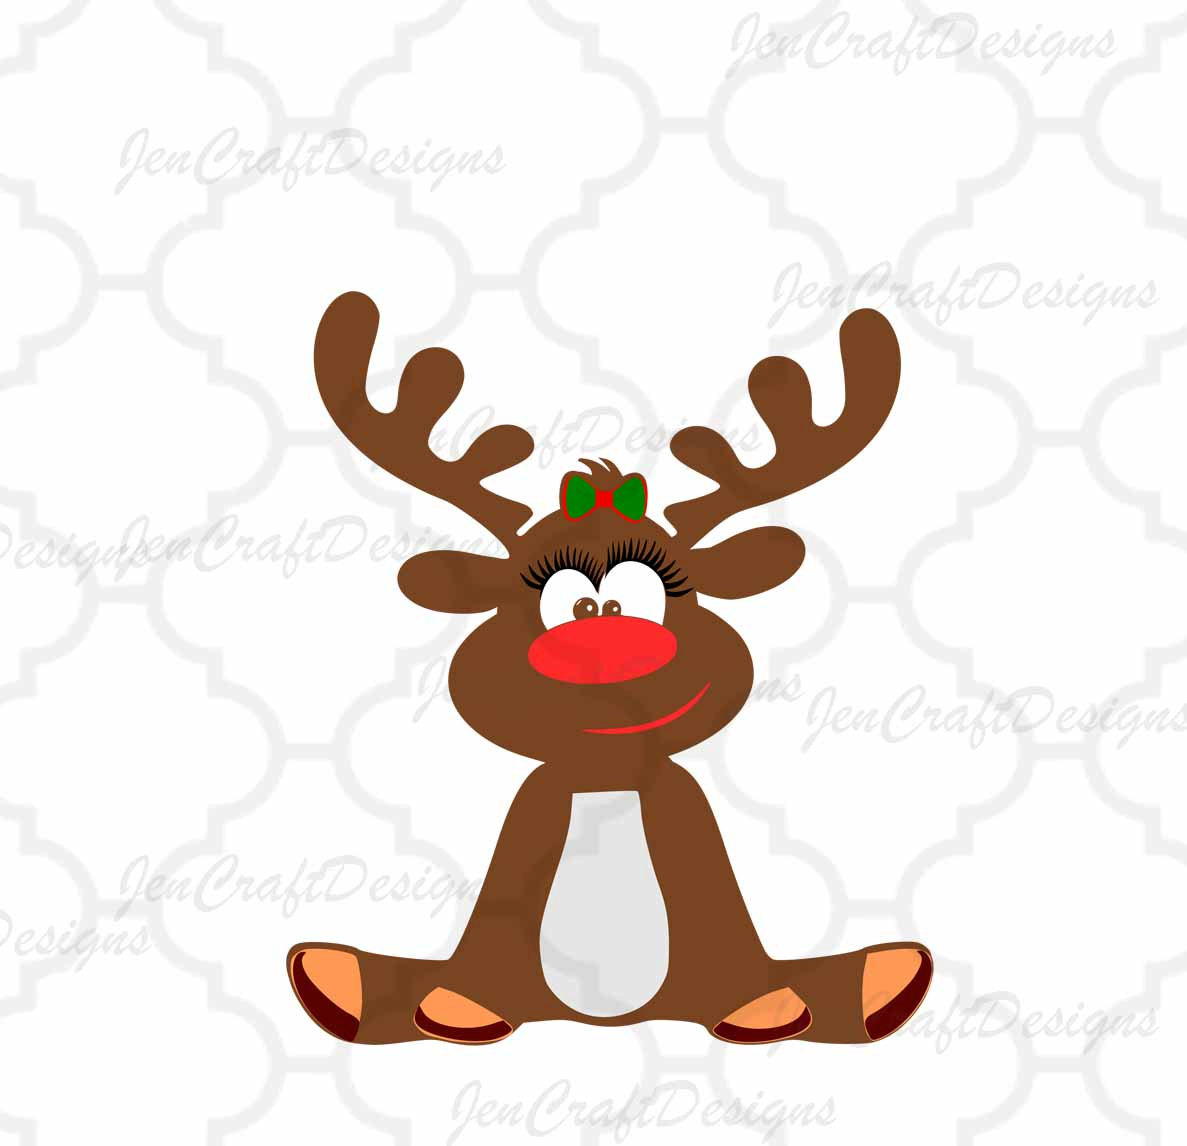 christmas reindeer clipart at getdrawings com free for personal rh getdrawings com flying reindeer clipart free cute reindeer clipart free